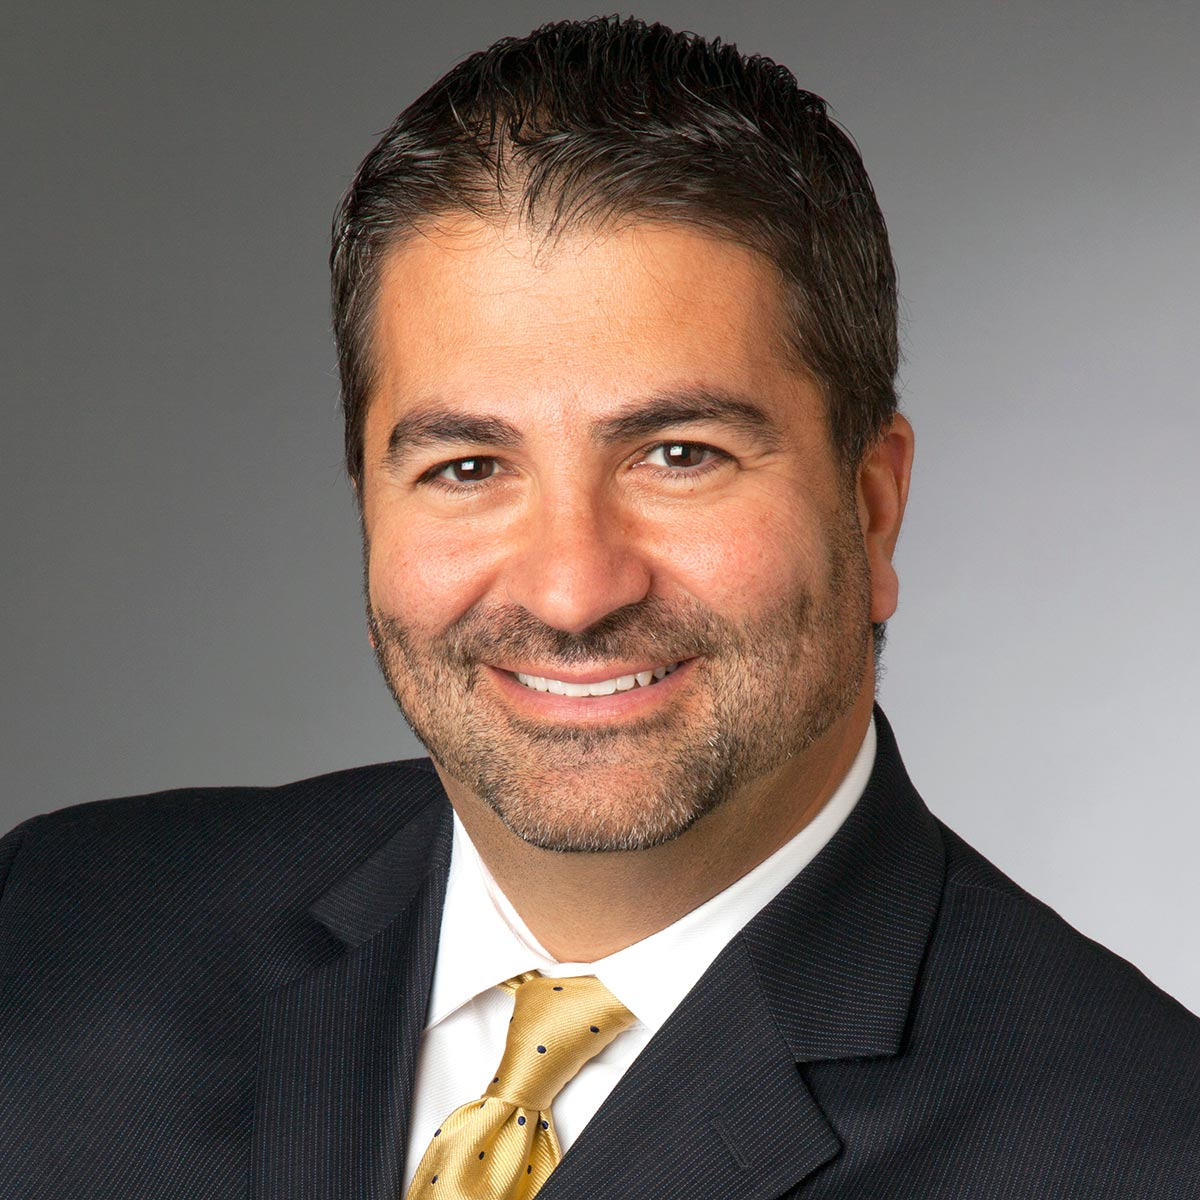 Joseph Cacchione, MD, FACC, serves as Executive Vice President, Clinical & Network Services (CNS) for Ascension.